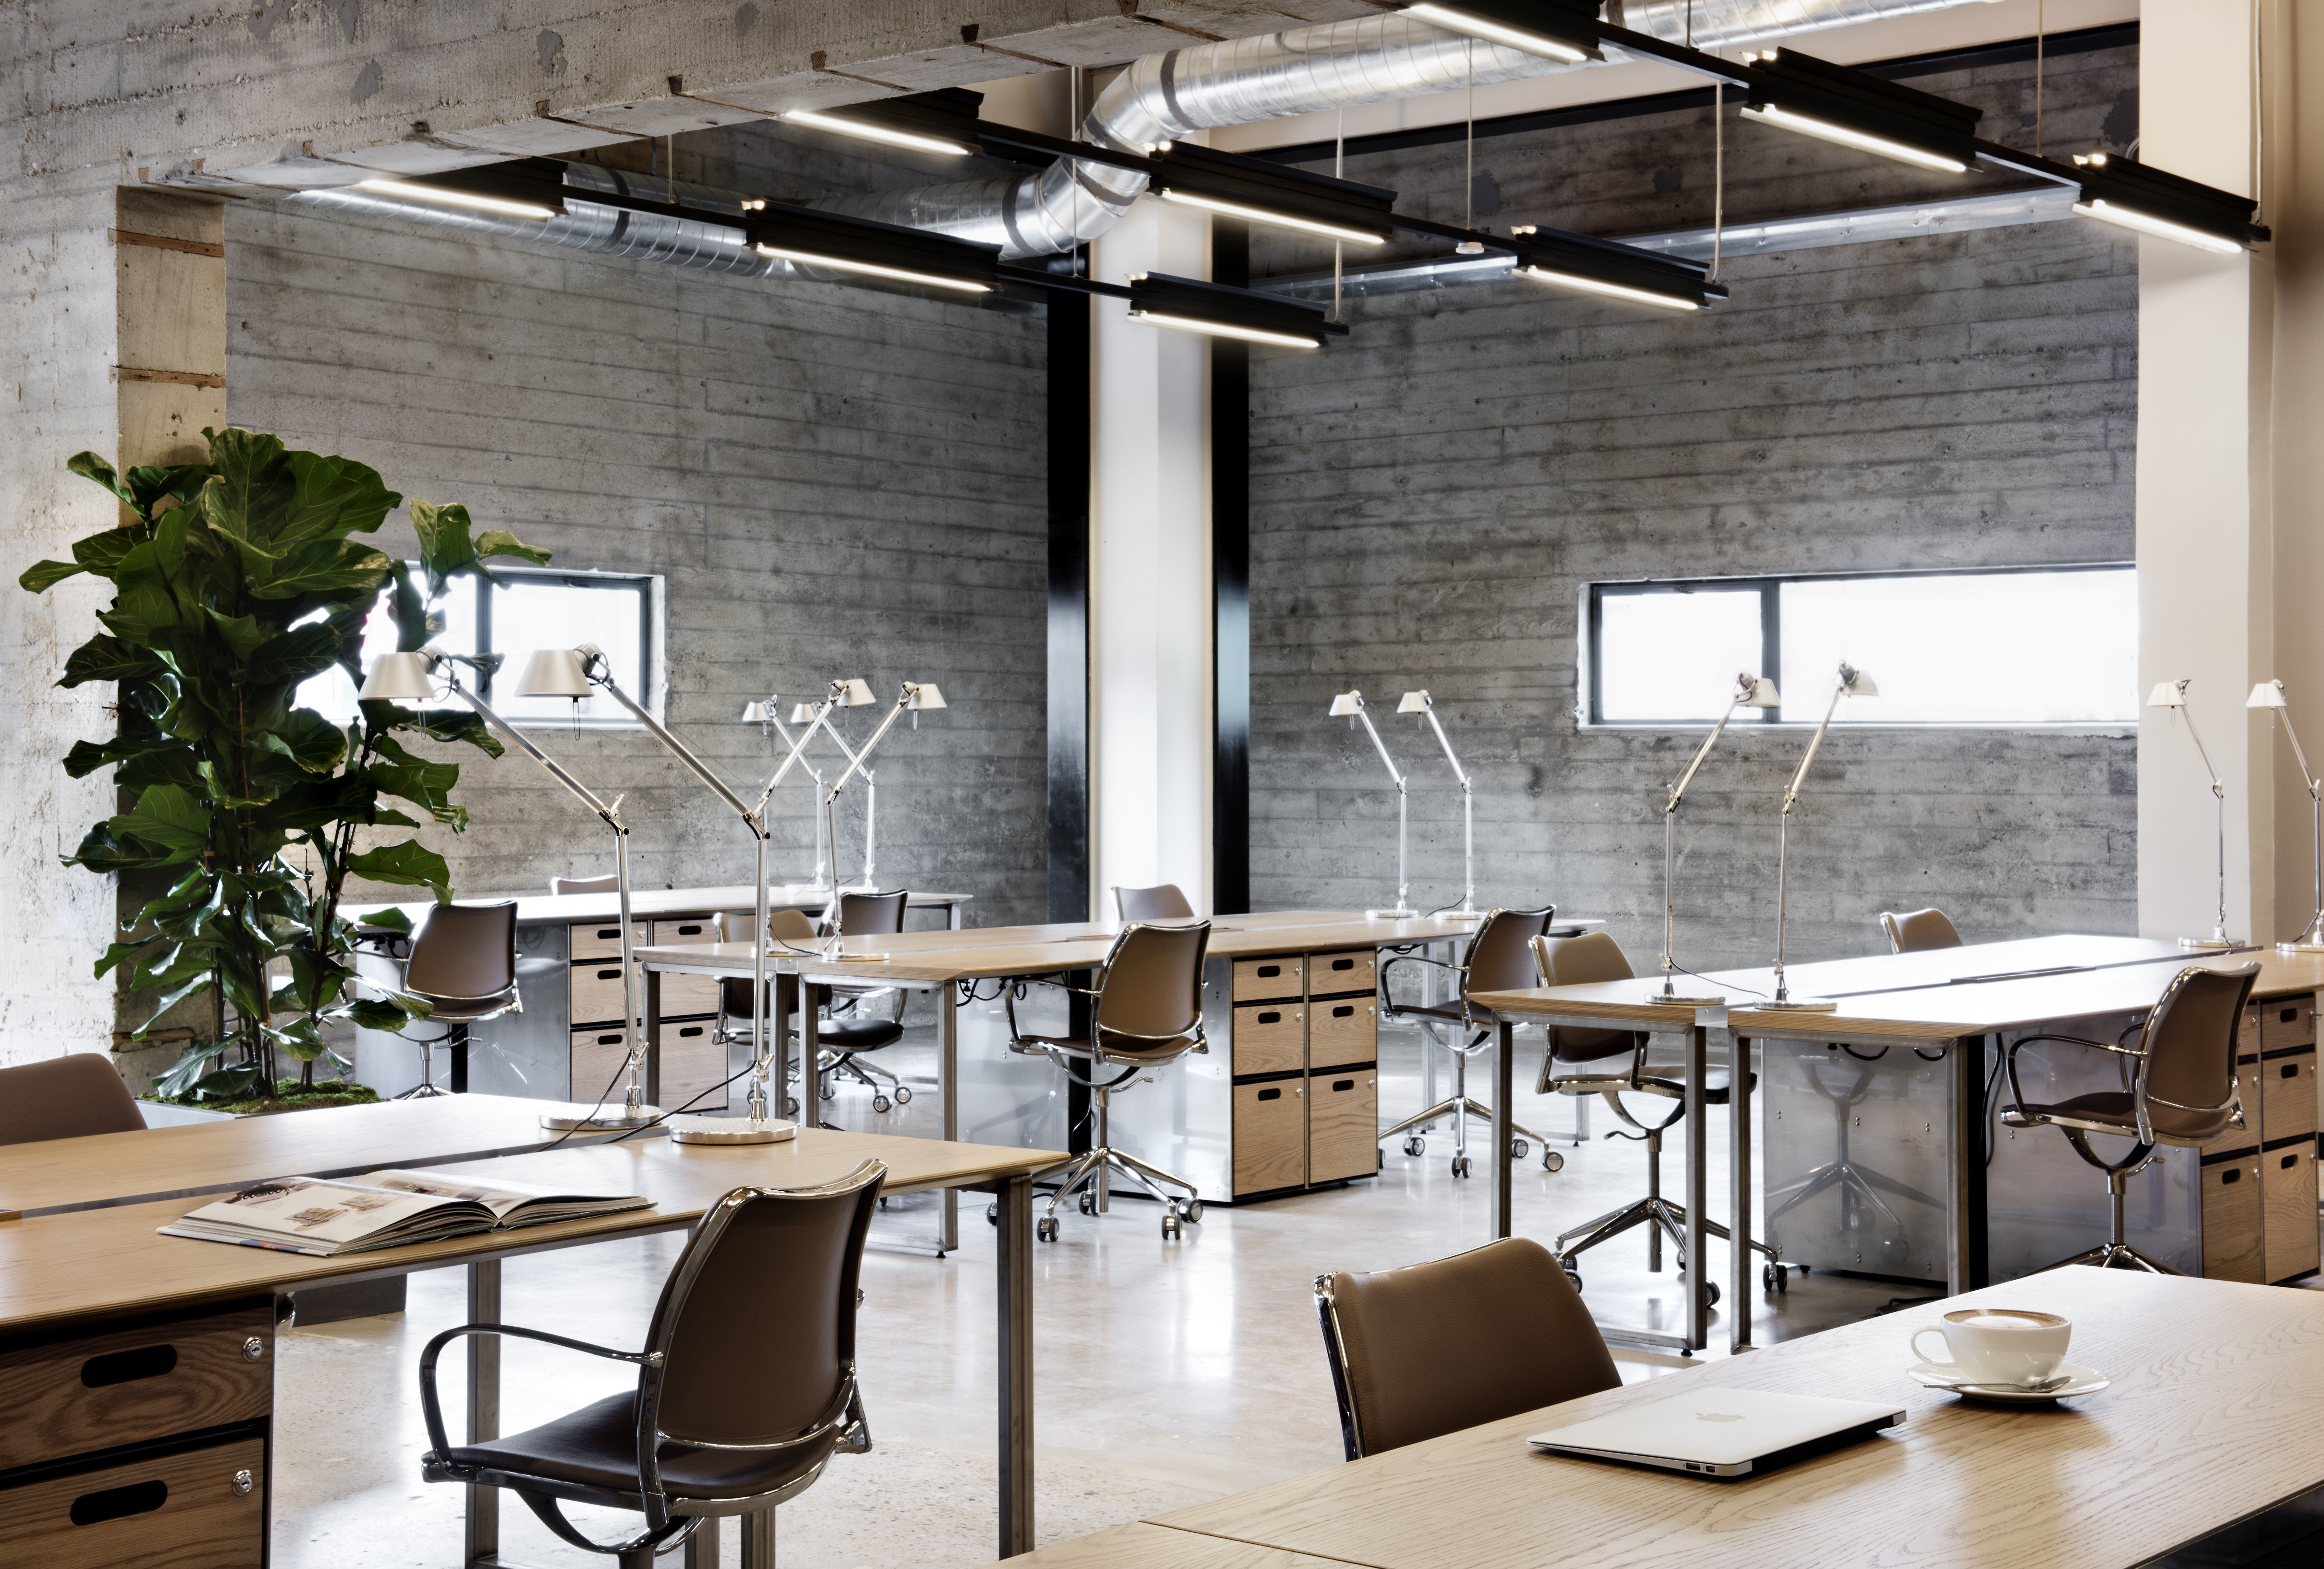 Modern Industrial Office Design Workspaces Beautiful Modern Industrial Office Design Workspaces T Industrial Office Design Workspace Design Office Interiors